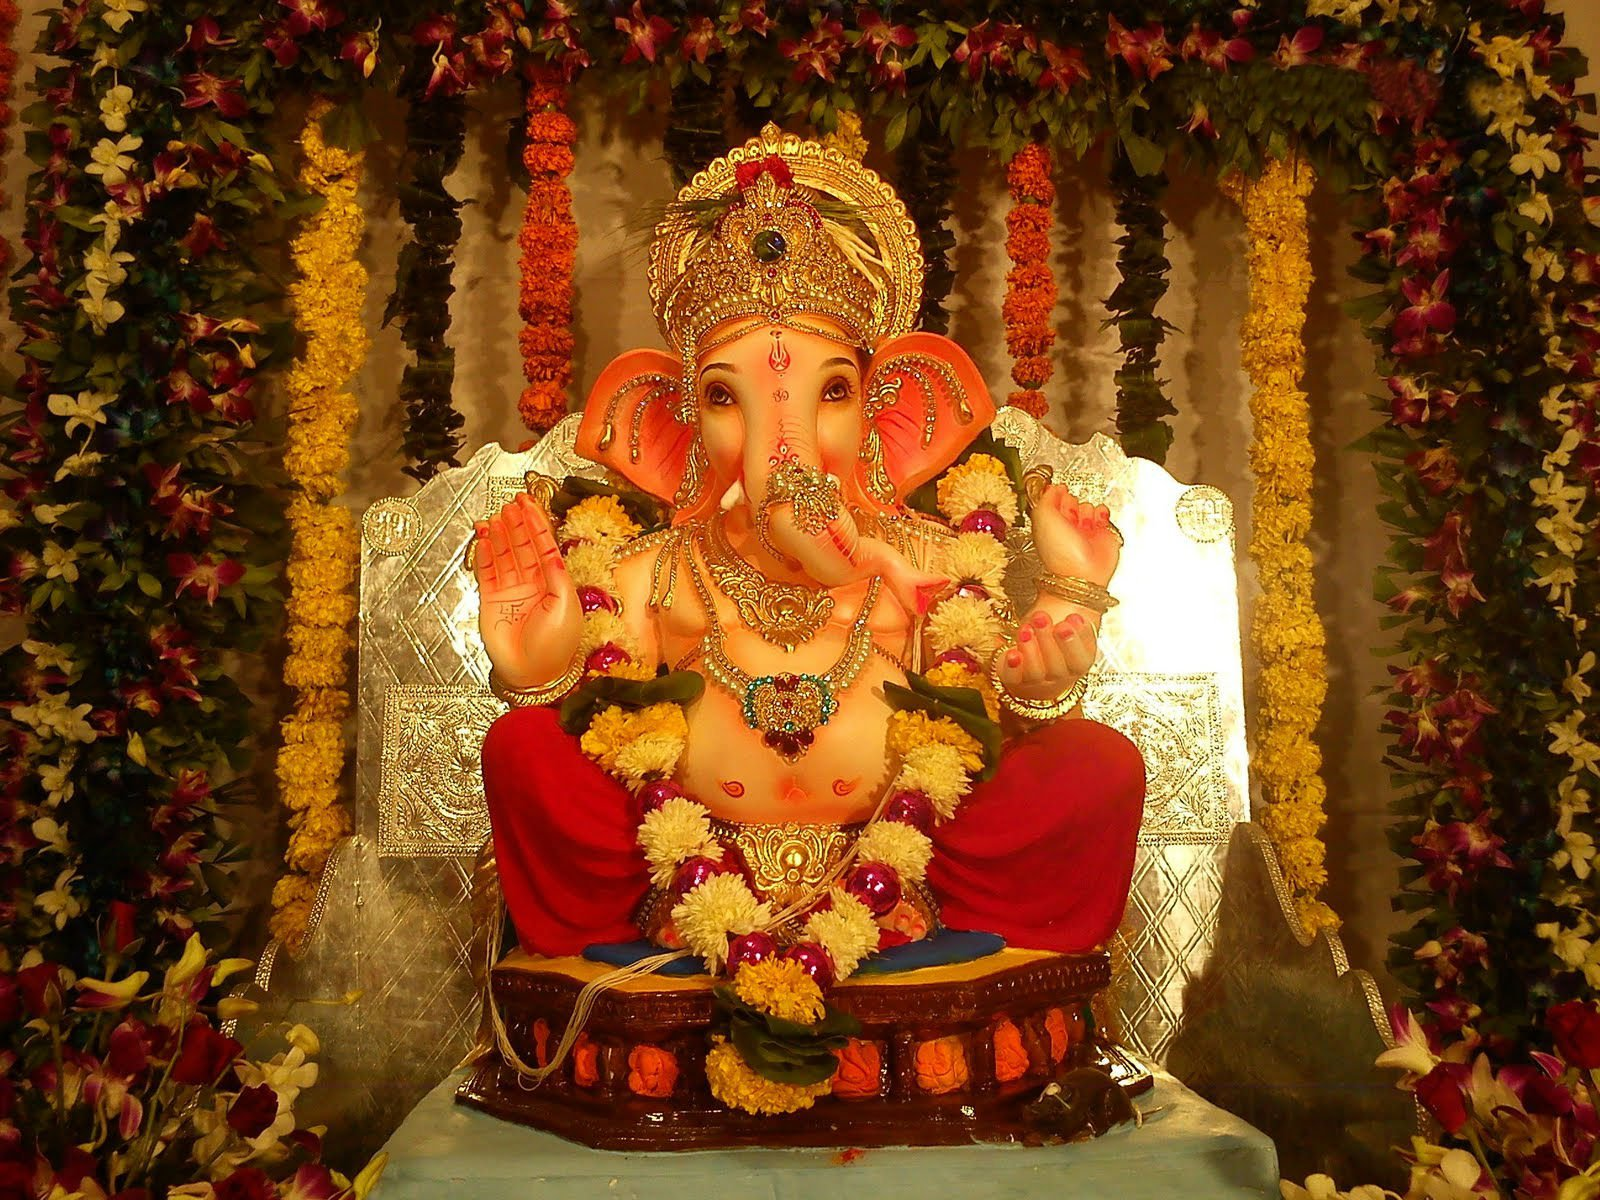 5 simple home decor ideas for ganesh chaturthi by monica chadha